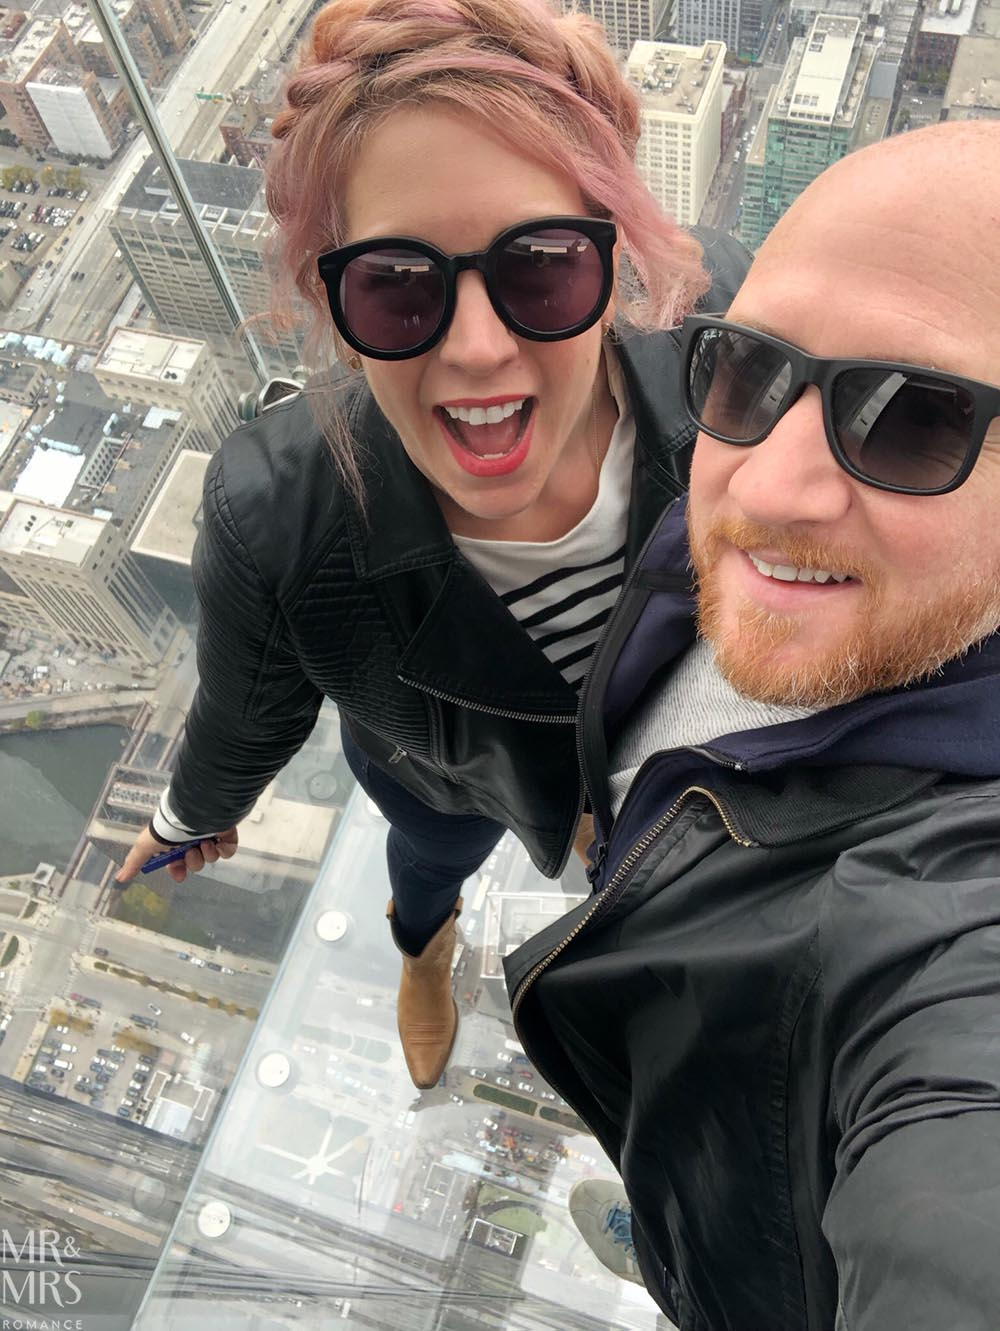 Skydeck Willis Tower and us, Chicago, IL